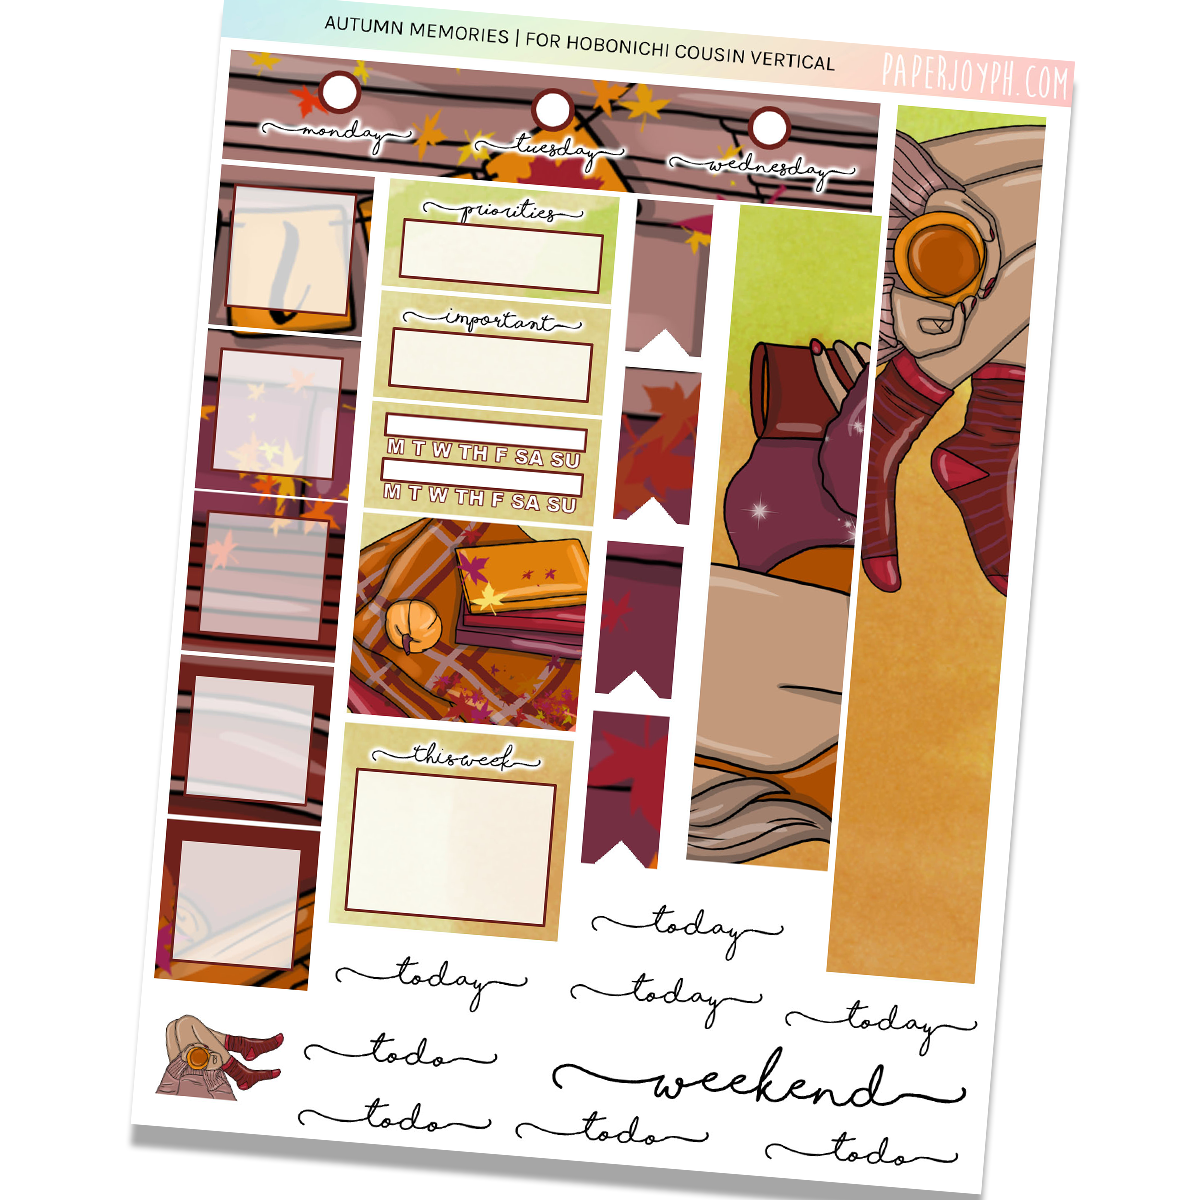 HOBONICHI COUSIN | VERTICAL STICKER KIT | AUTUMN MEMORIES